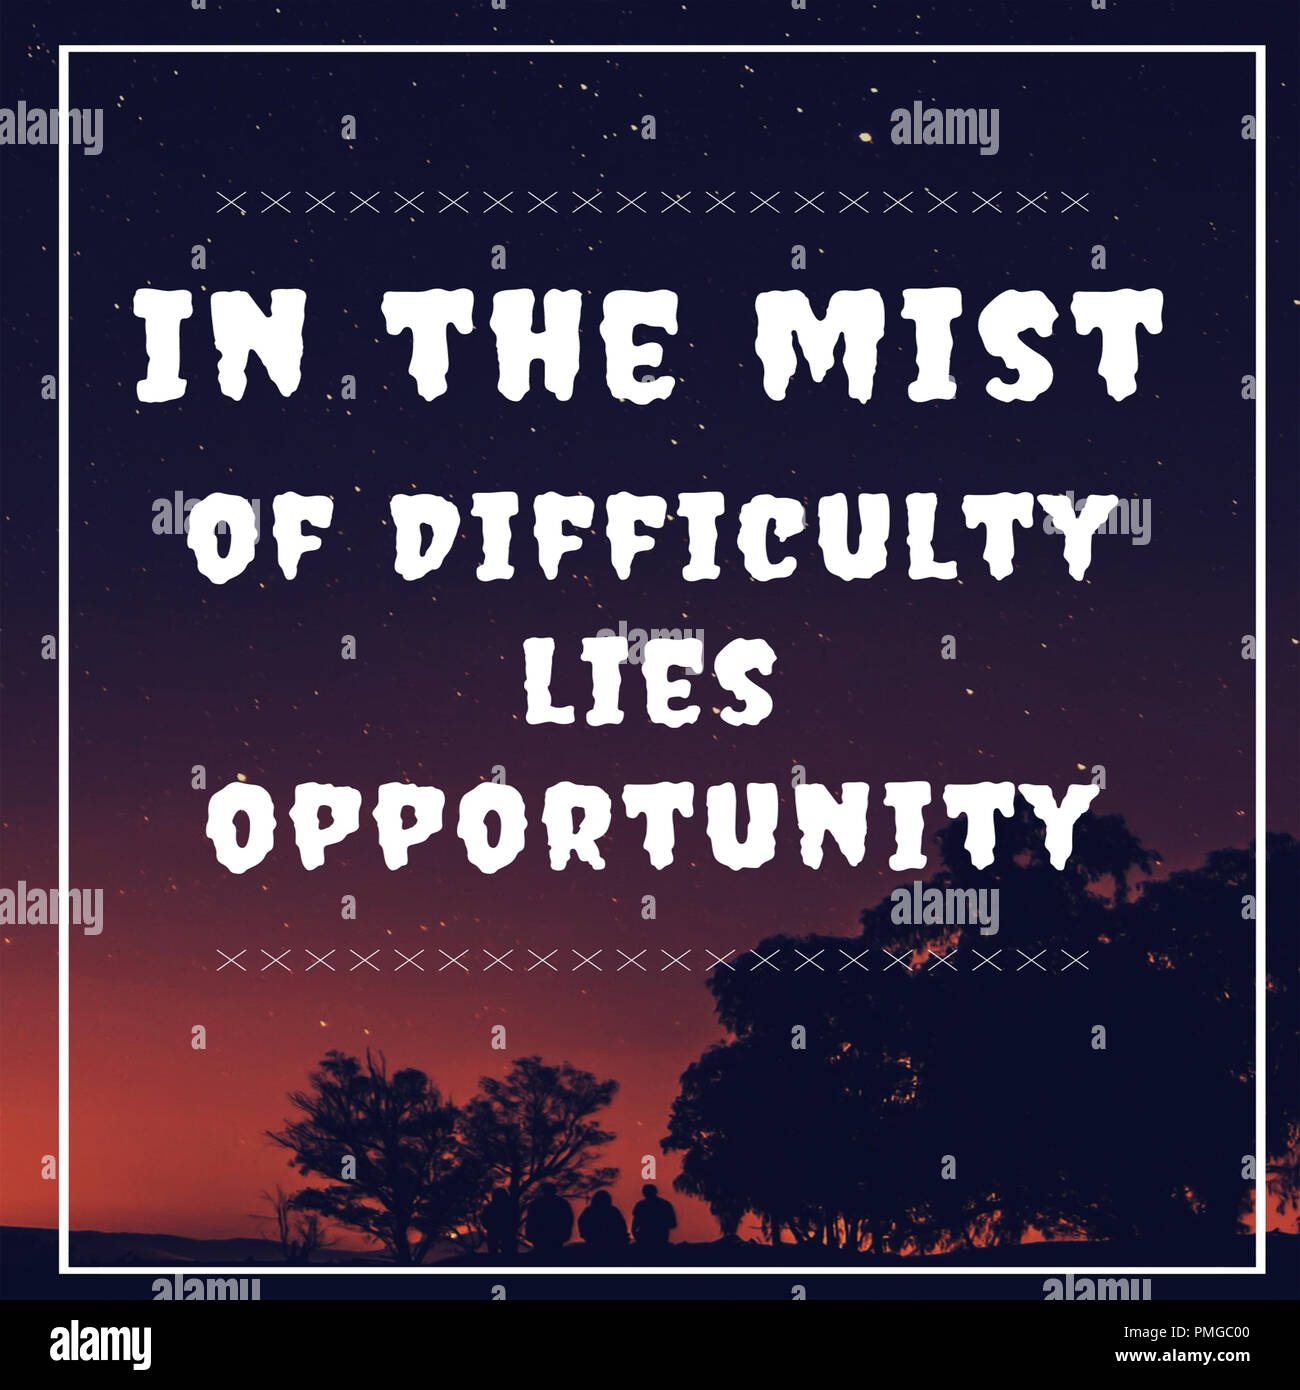 Inspirational Quotes In The Mist Of Difficulty Lies Opportunity